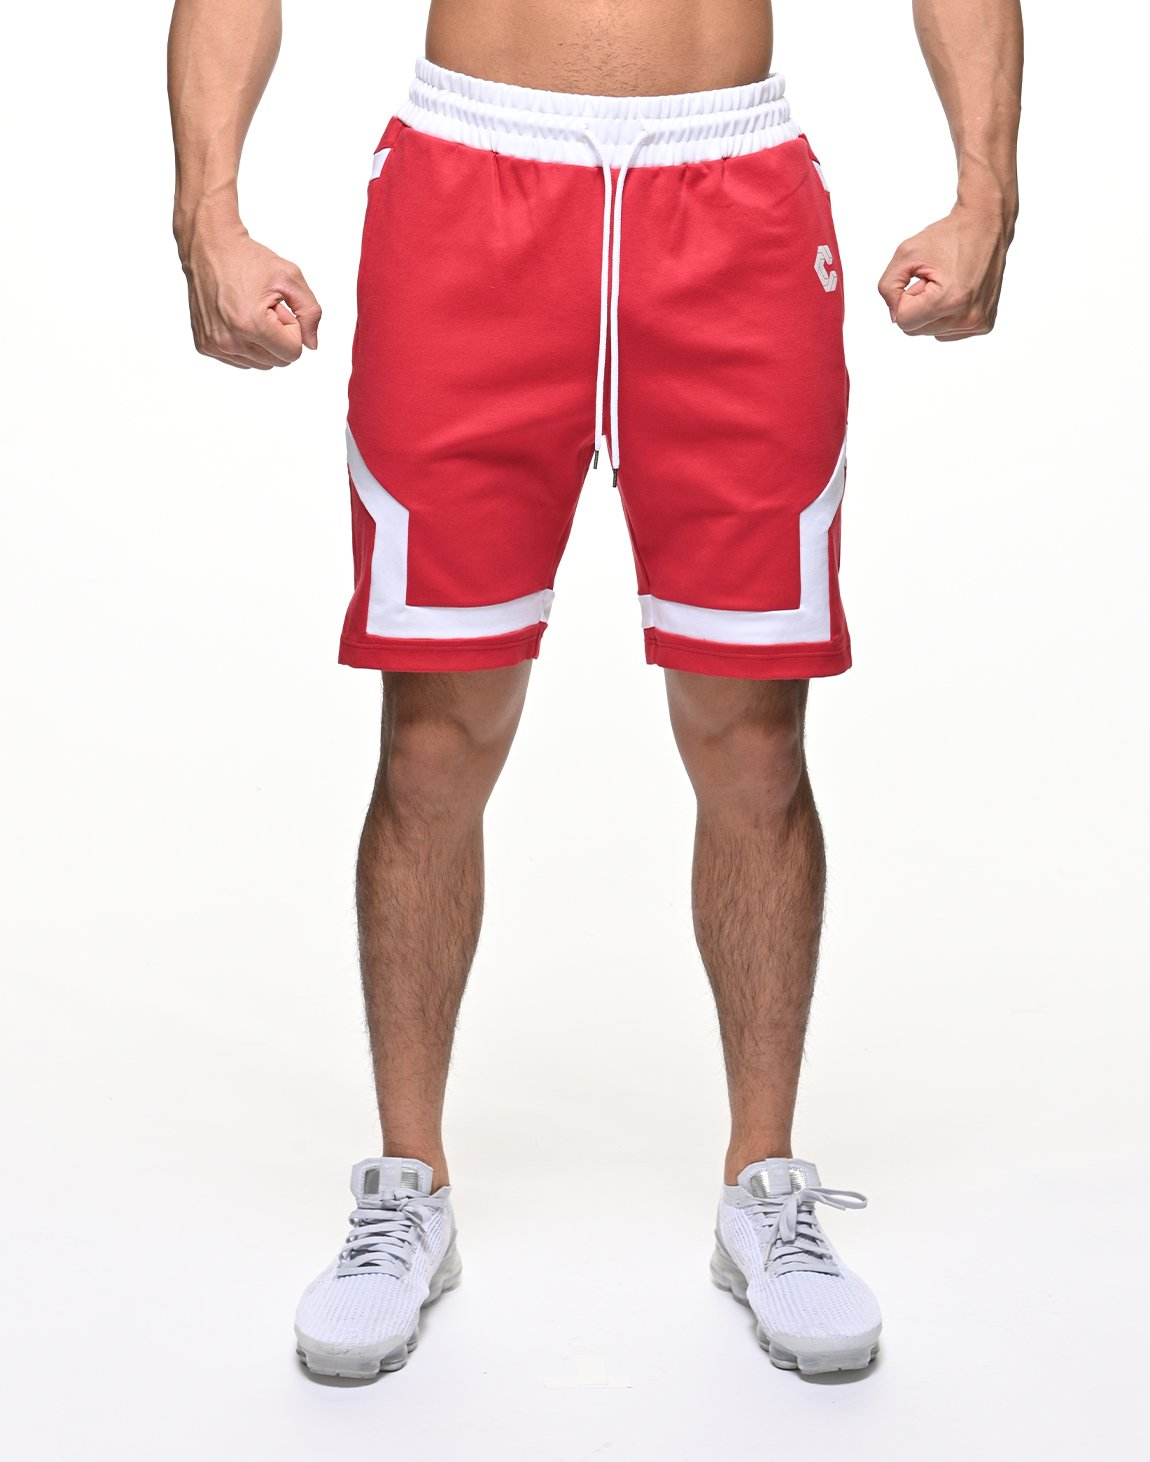 <img class='new_mark_img1' src='https://img.shop-pro.jp/img/new/icons55.gif' style='border:none;display:inline;margin:0px;padding:0px;width:auto;' />CRONOS BACK LOGO SHORTS【RED】